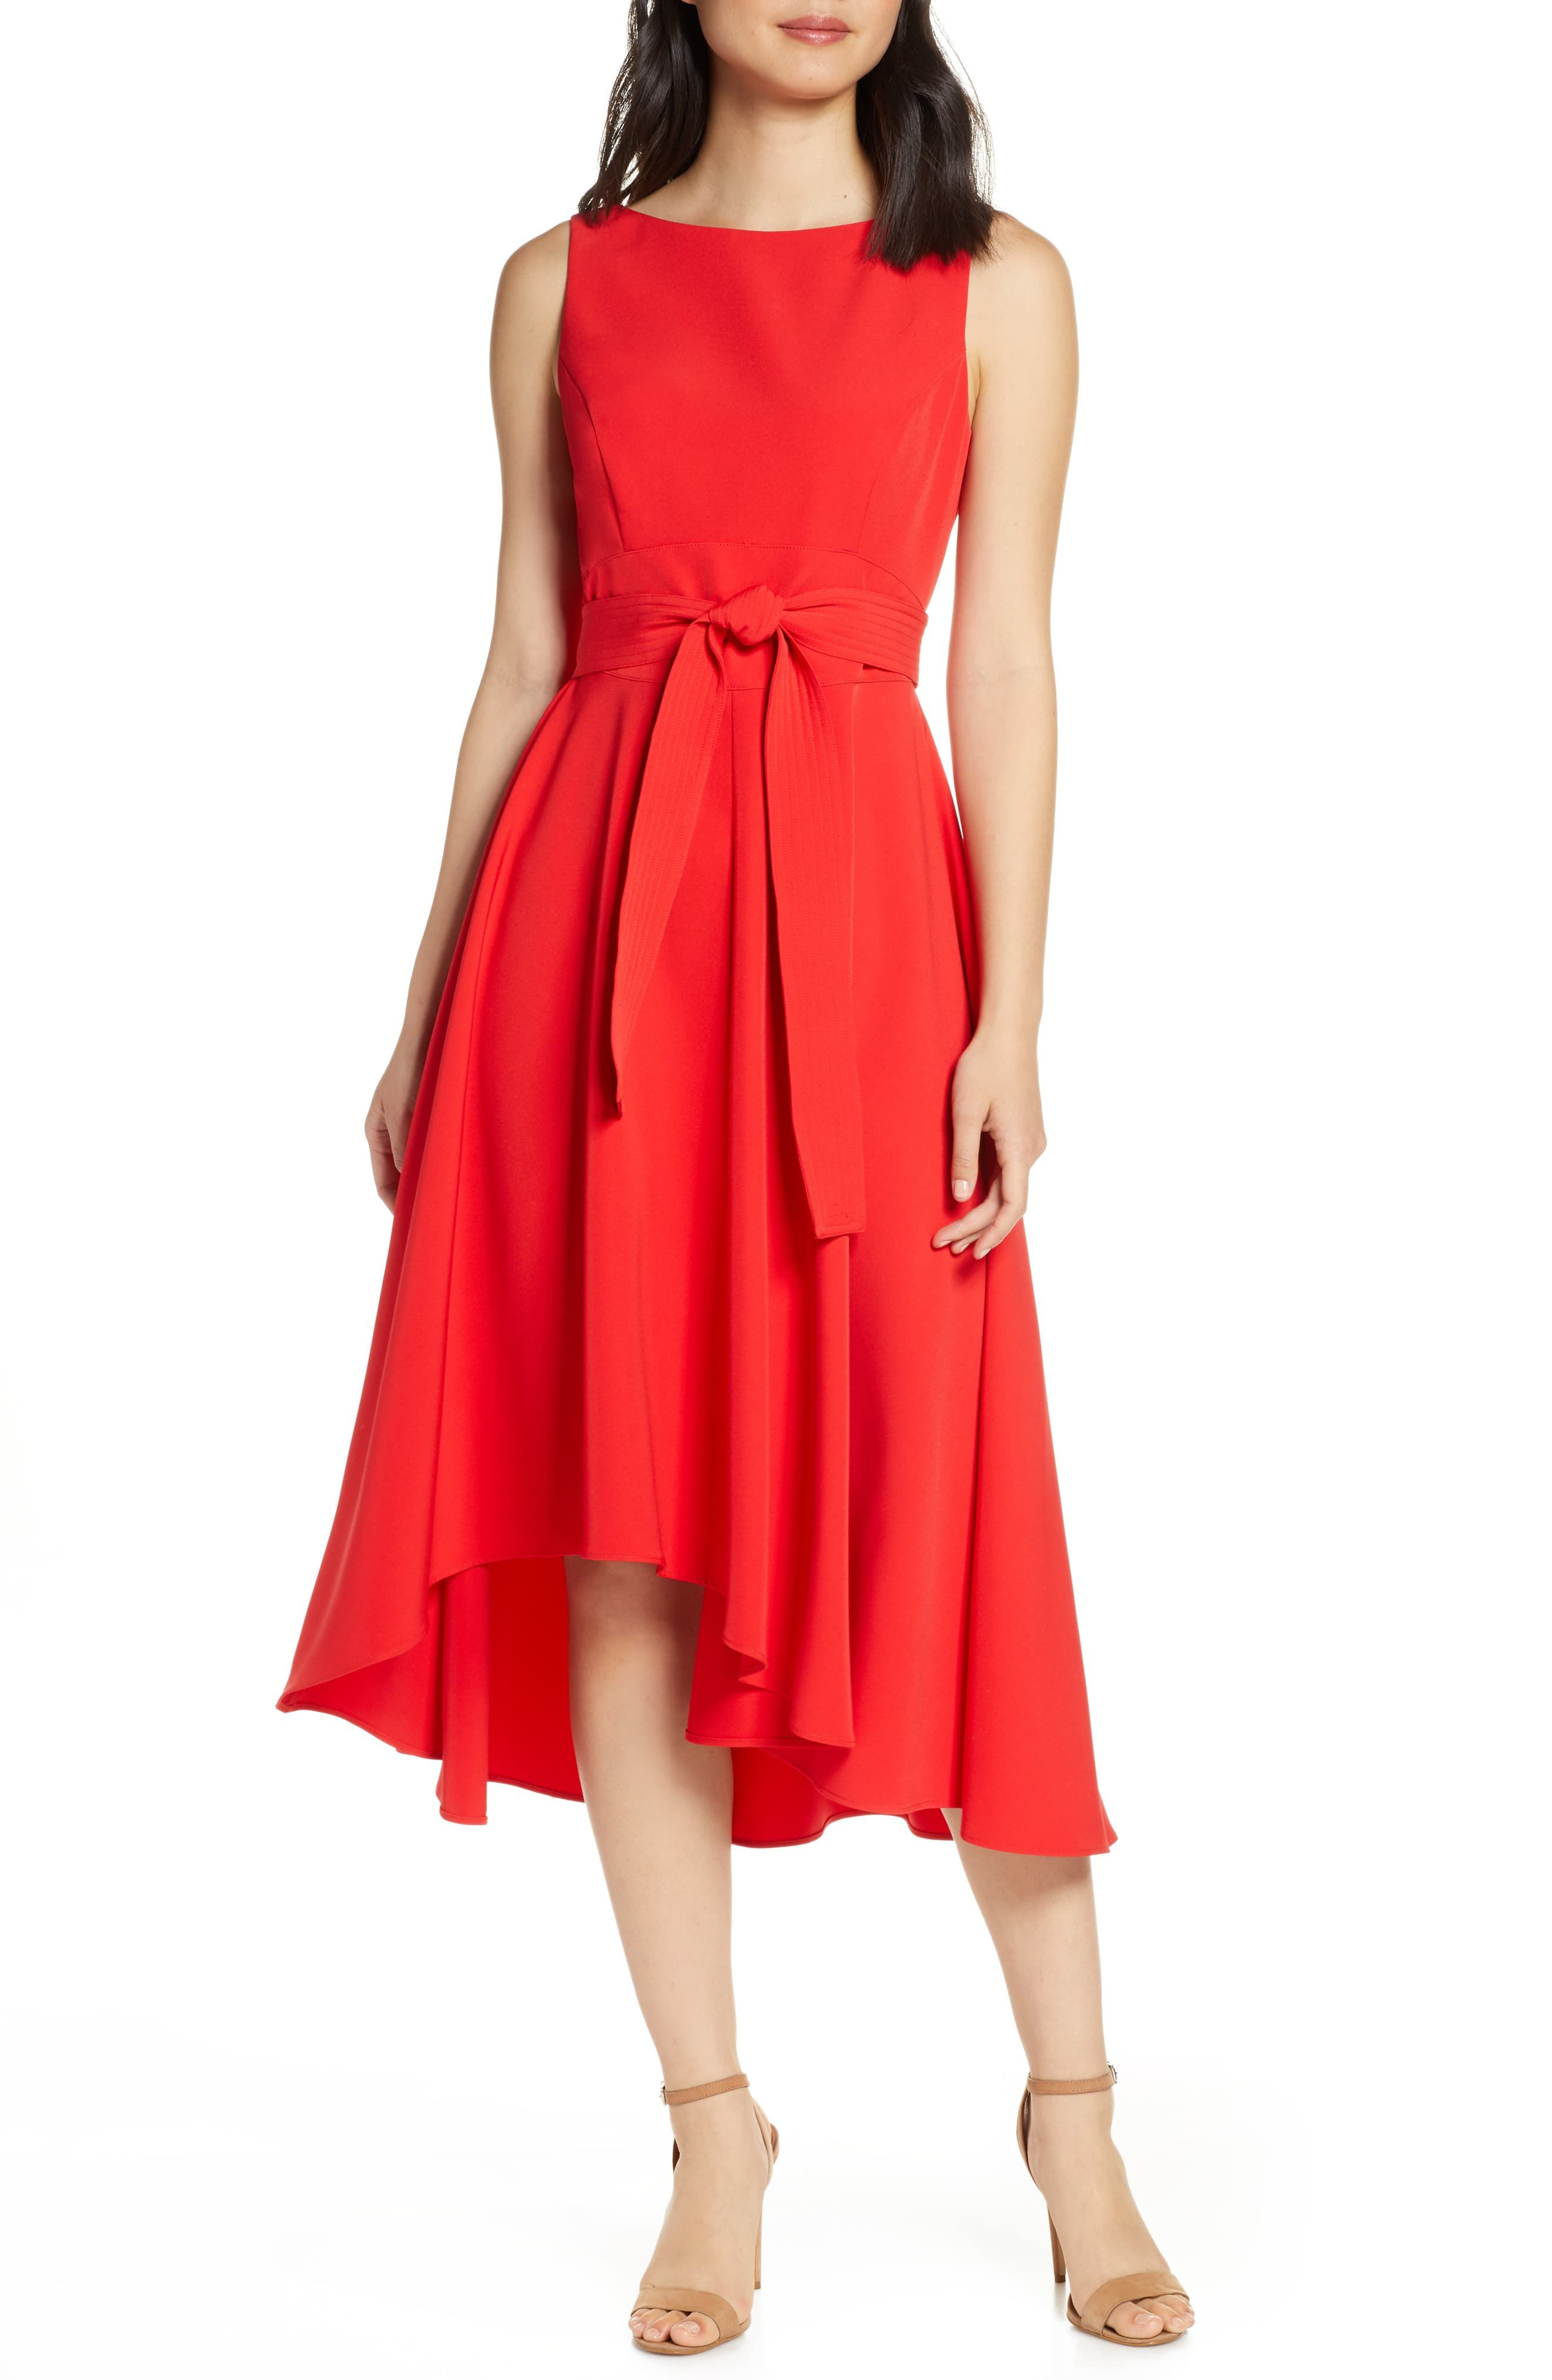 Women S Vince Camuto Crepe Asymmetrical Midi Dress Size 2 Red In 2019 Products Dresses Nordstrom Dresses Asymmetrical Dress